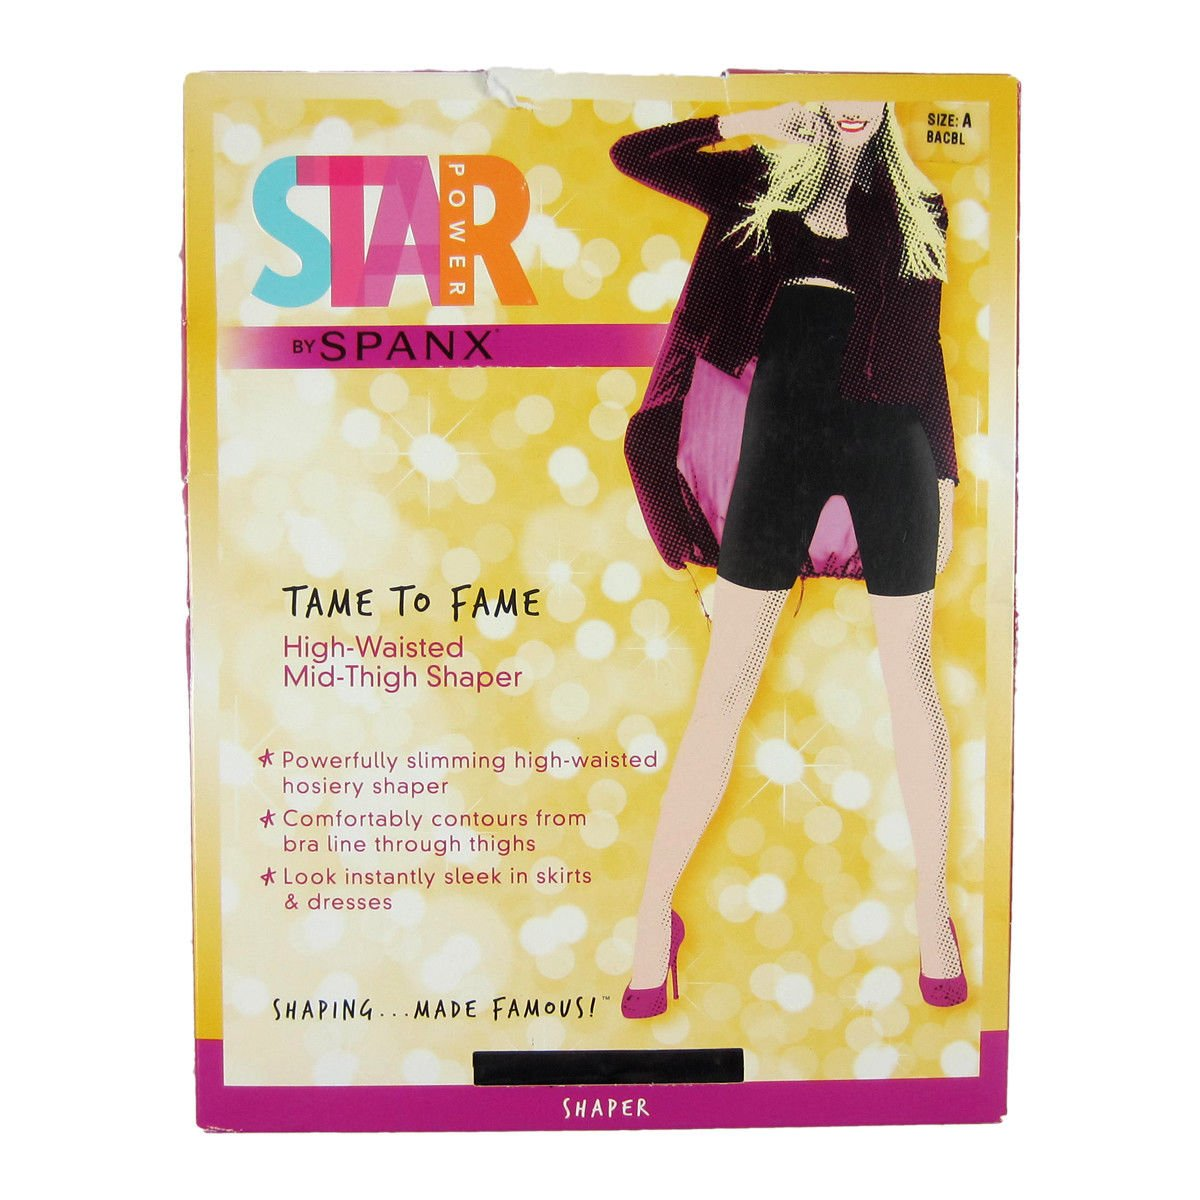 917db0ffde Details about NEW SPANX Star Power Tame to Fame High-Waisted Mid Thigh  Shaper Backdrop Black